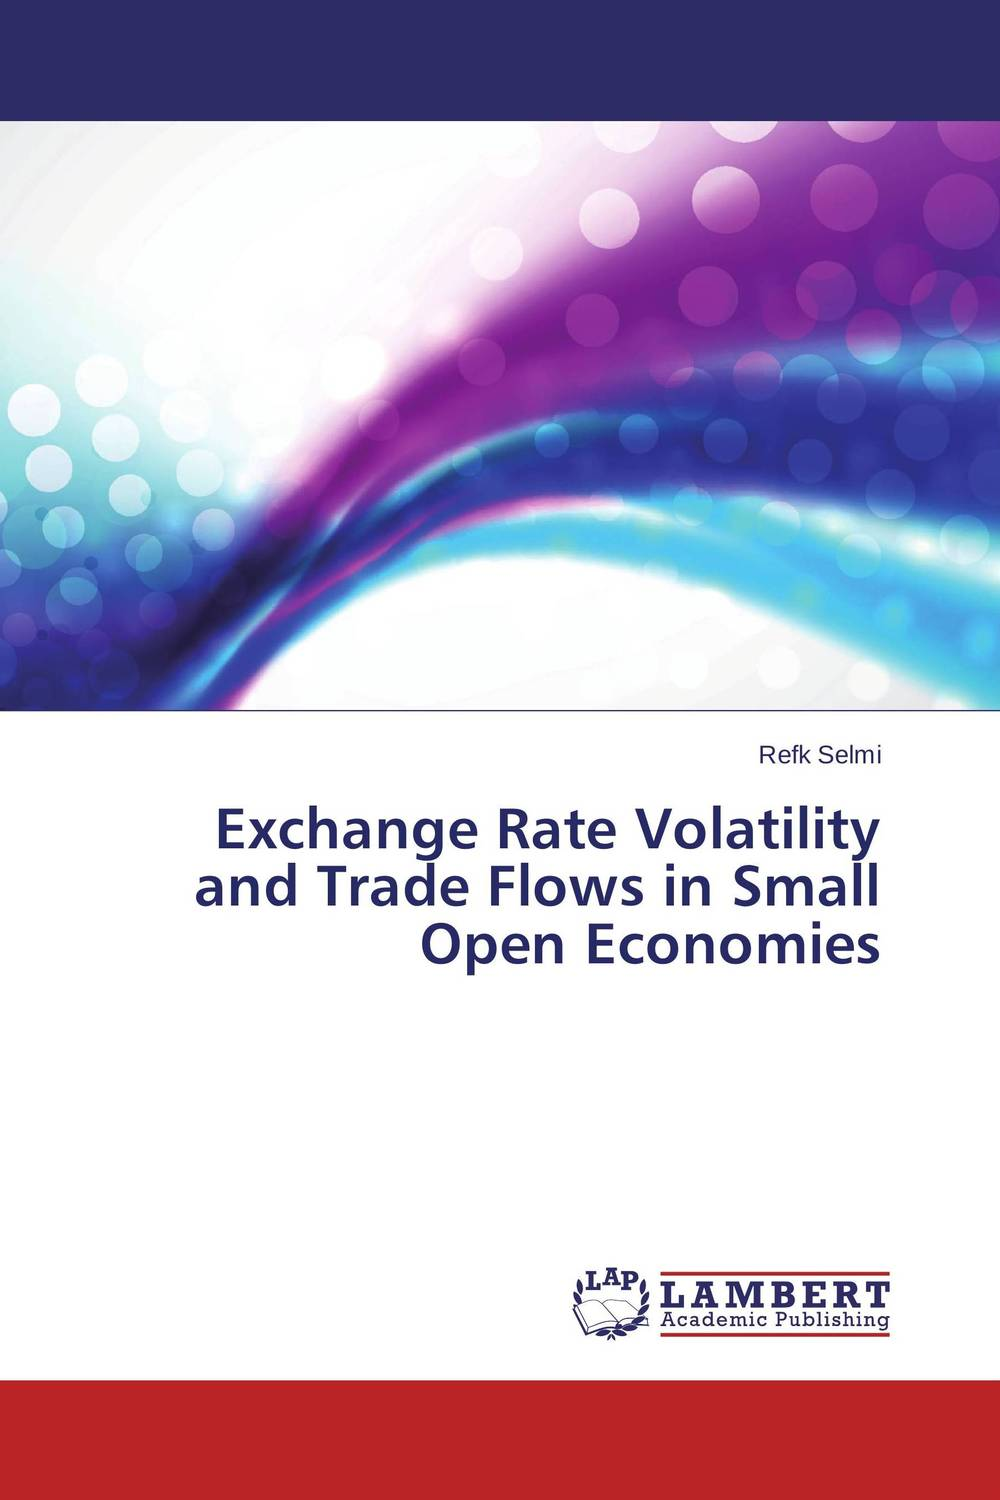 Exchange Rate Volatility and Trade Flows in Small Open Economies nkobe kenyoru dividend policy and share price volatility